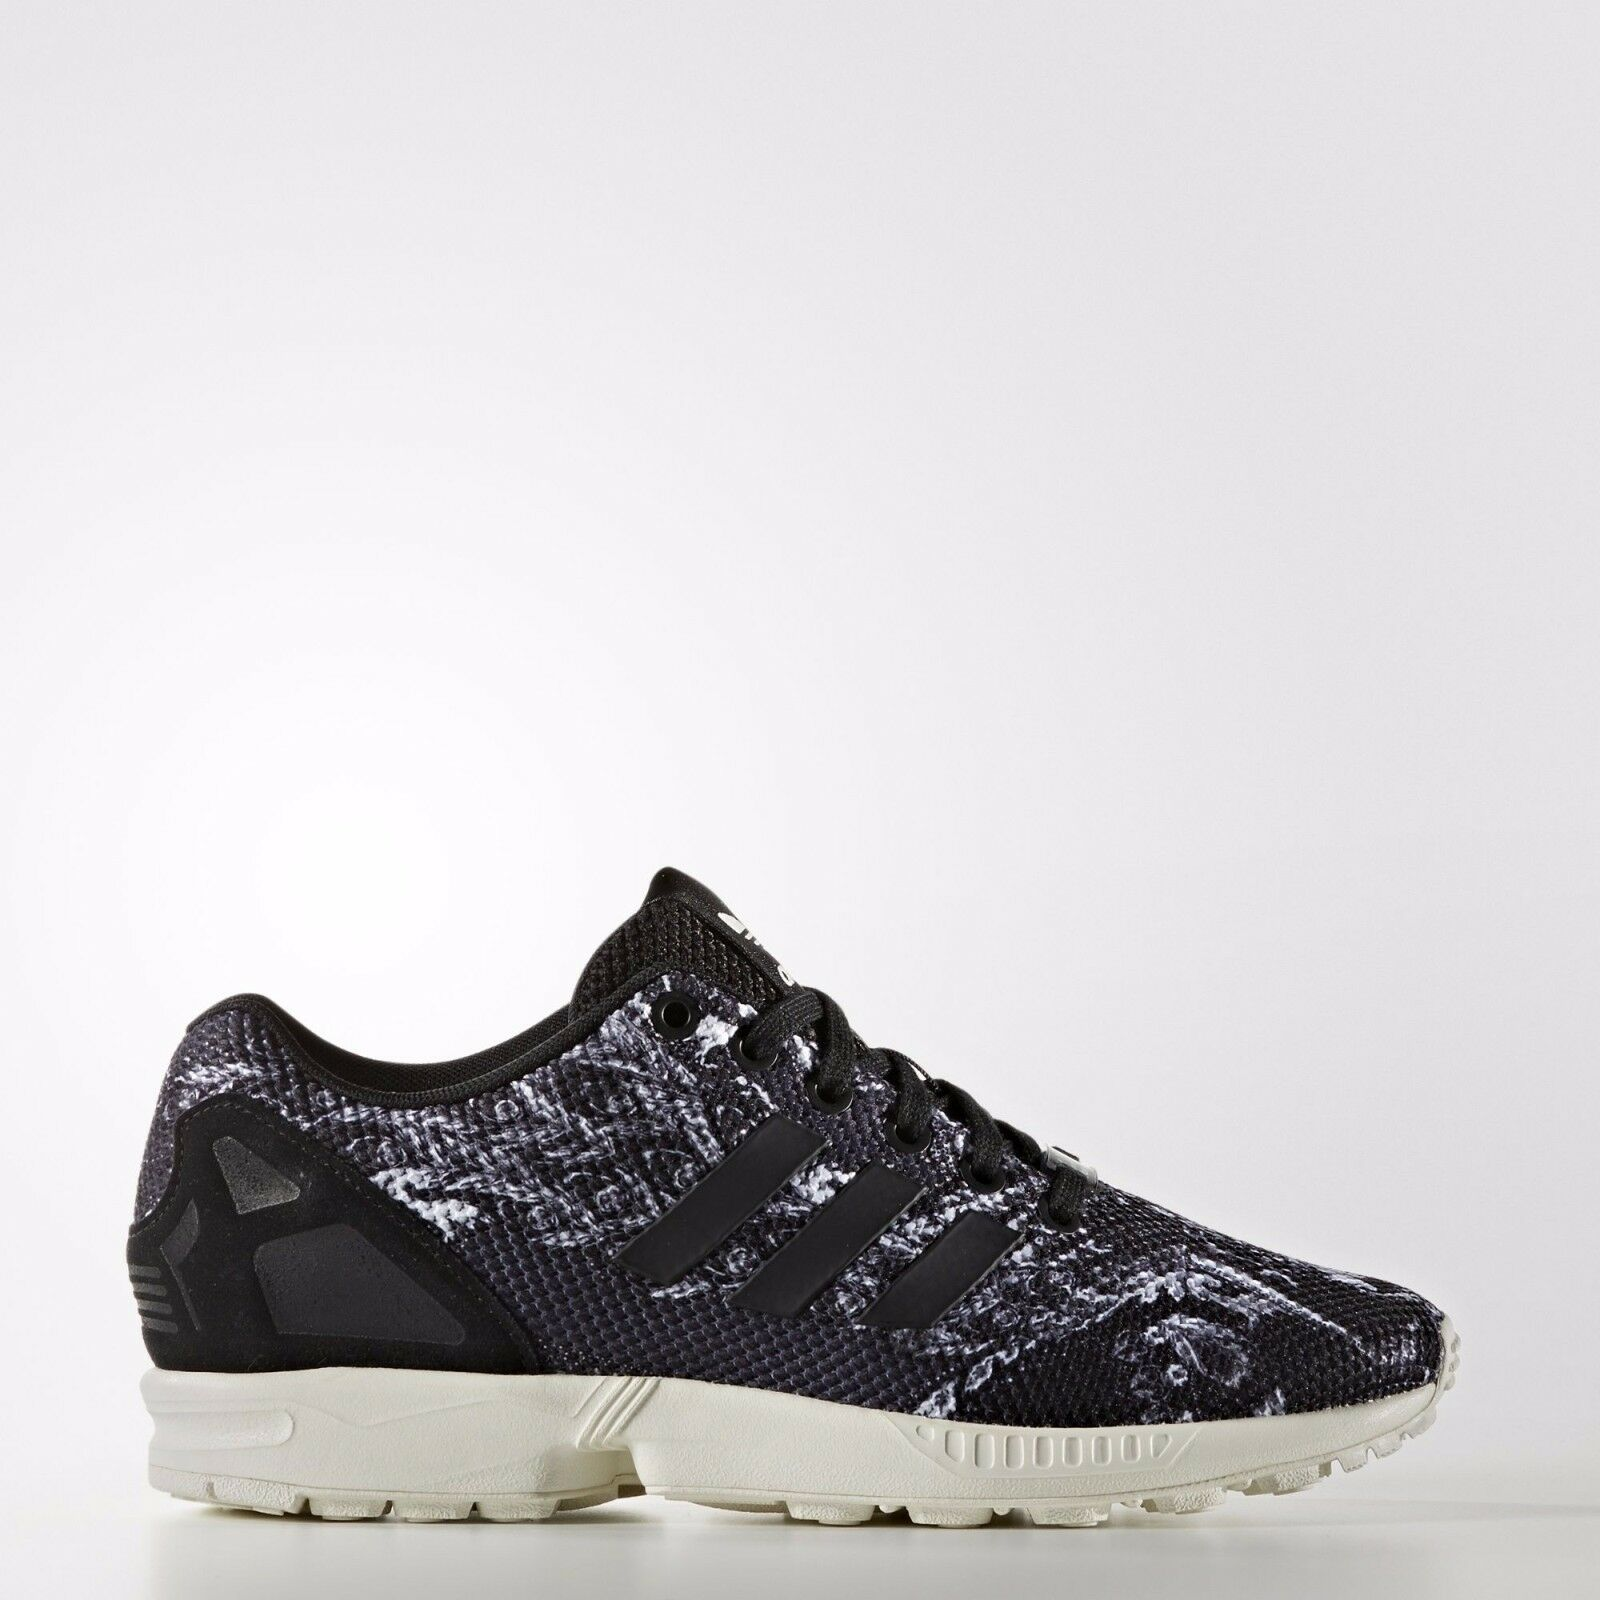 ADIDAS ORIGINALS ZX FLUX FARM RIO WOMEN'S RUNNING Schuhe SIZE US 6.5 BLACK S76592